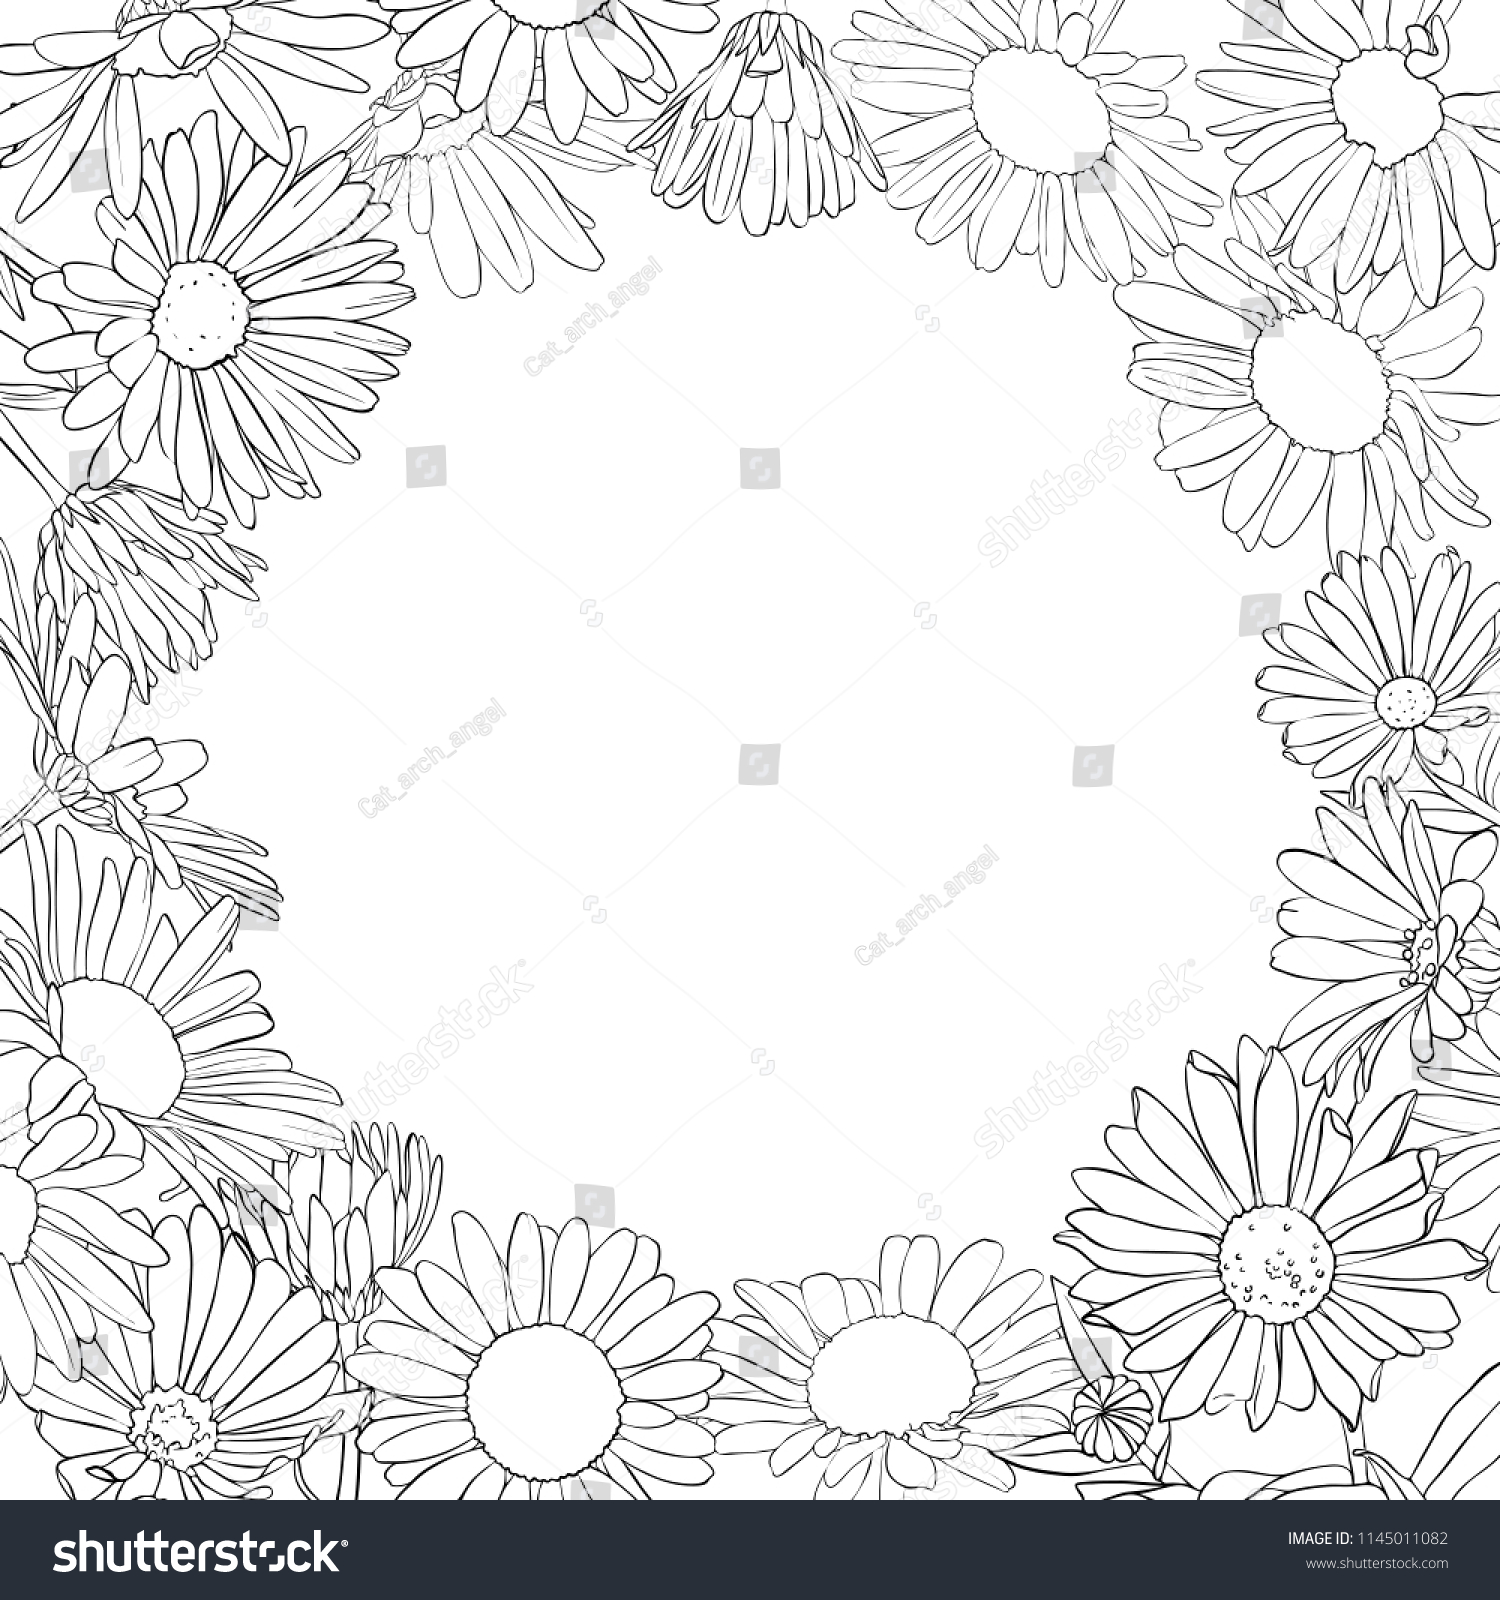 vector frame drawing daisy flowers floral stock vector royalty free